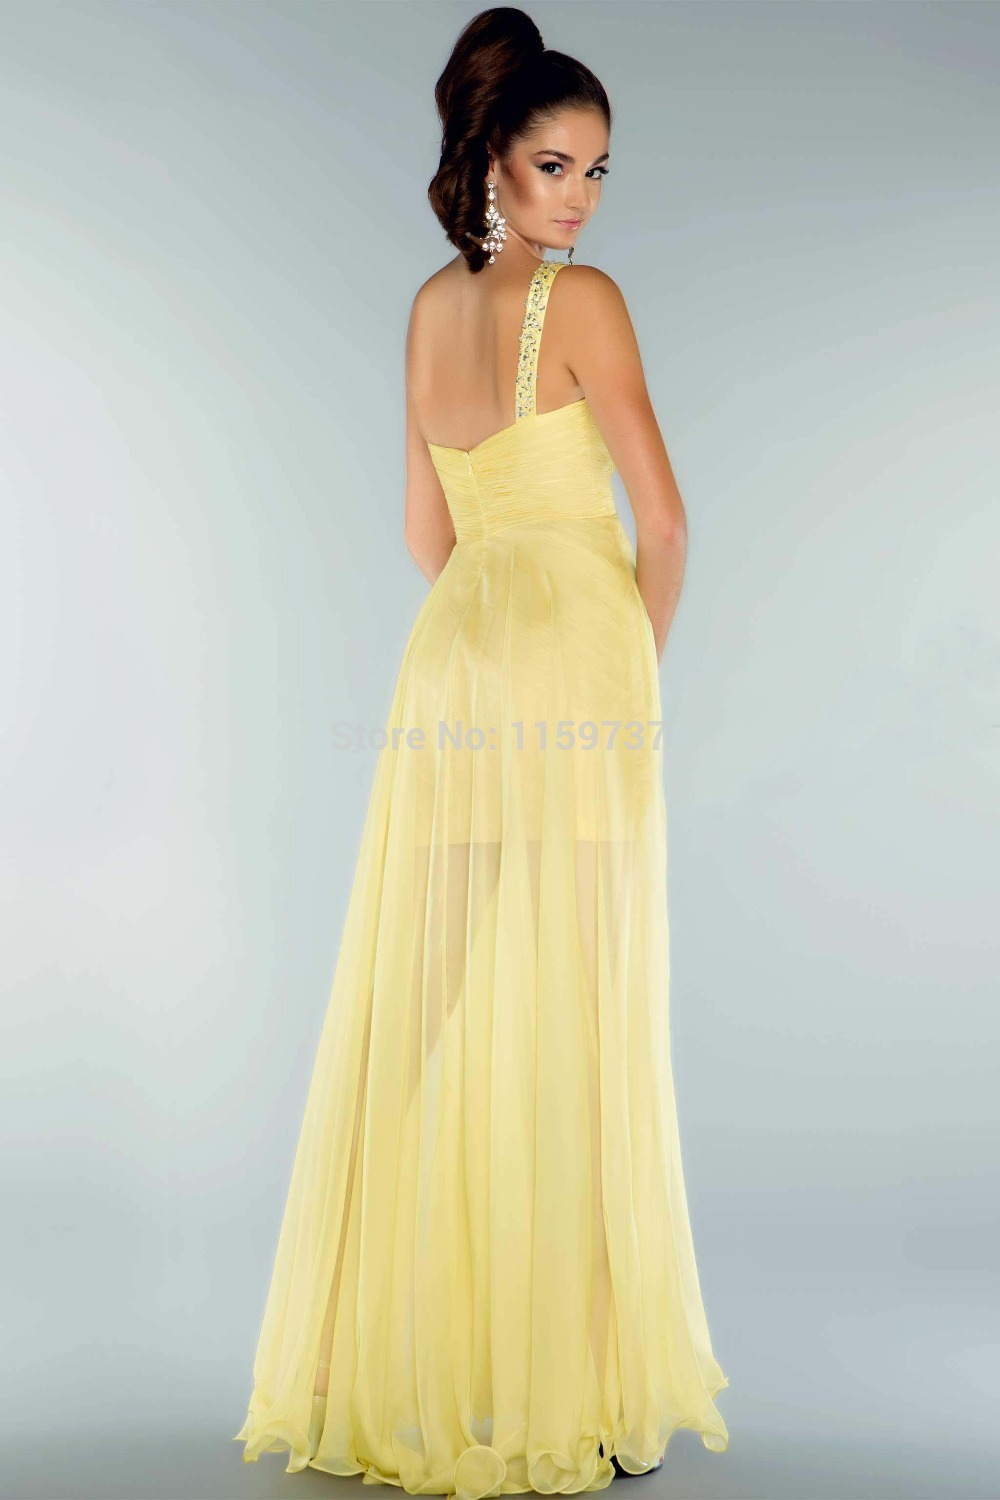 Bridesmaid dresses san diego cheap junoir bridesmaid dresses for Cheap wedding dresses san diego